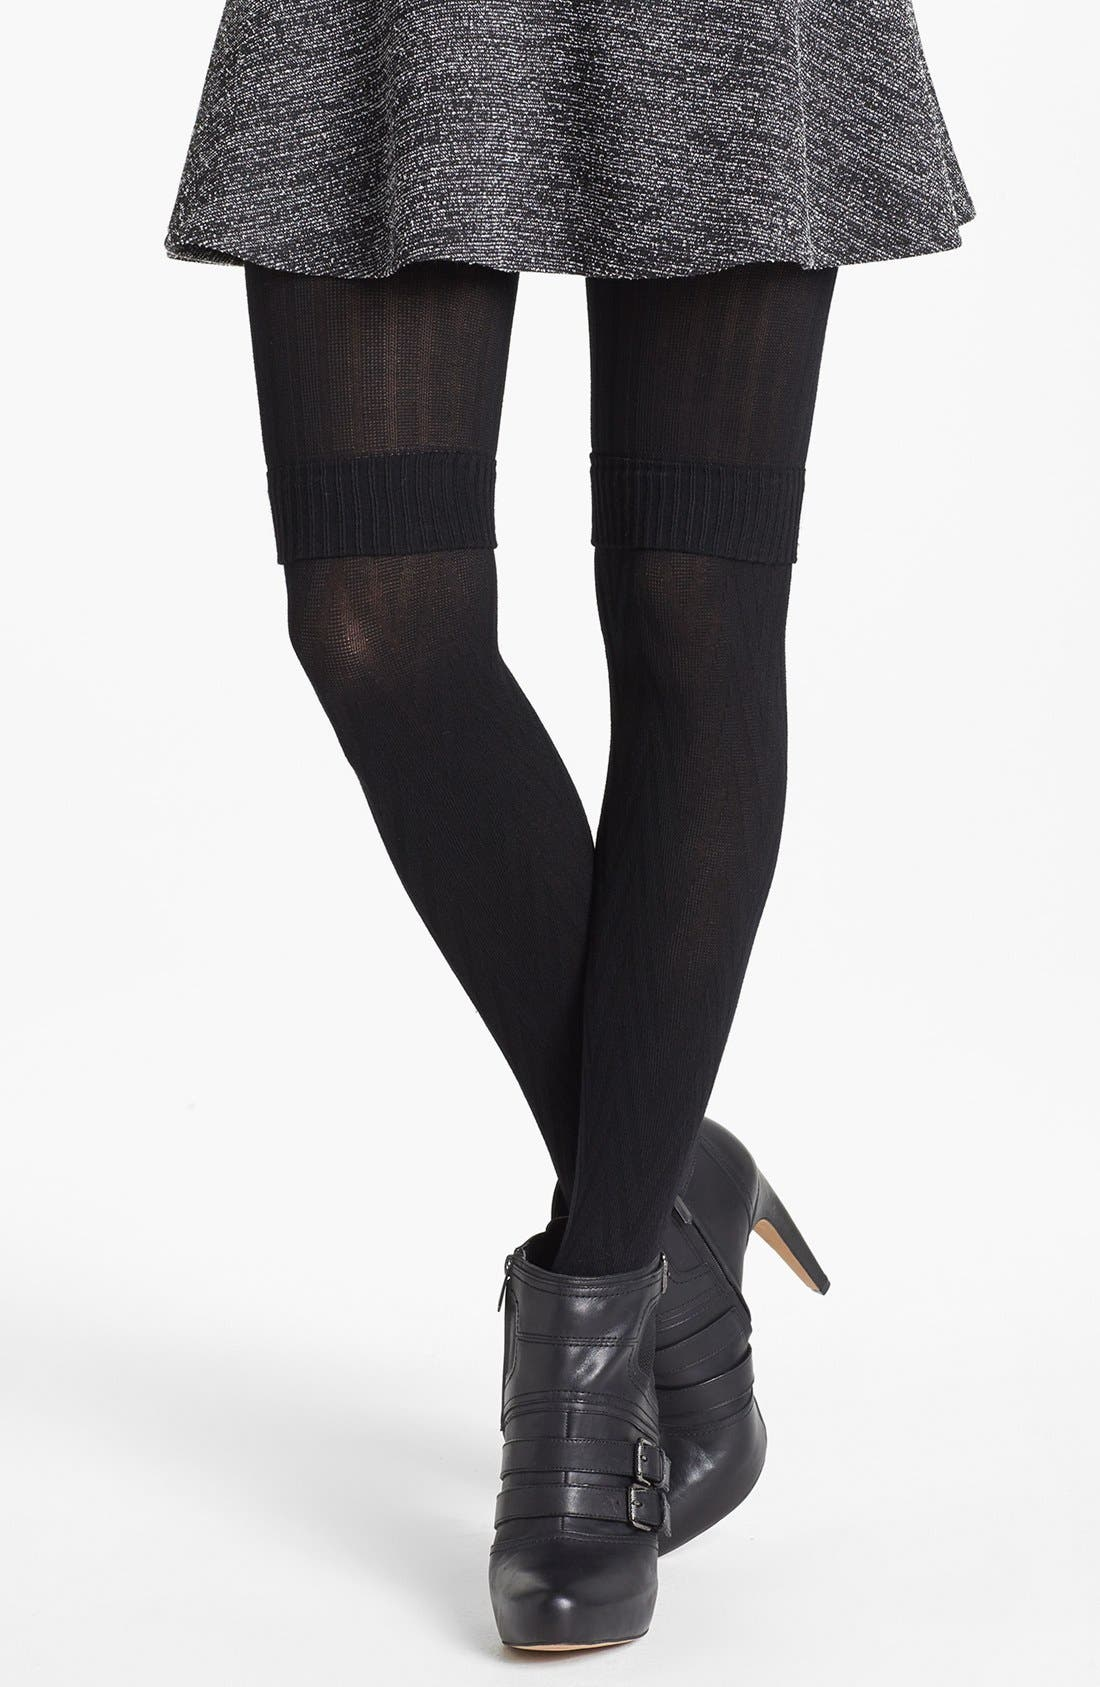 Alternate Image 1 Selected - Hot Sox Layered Look Tights